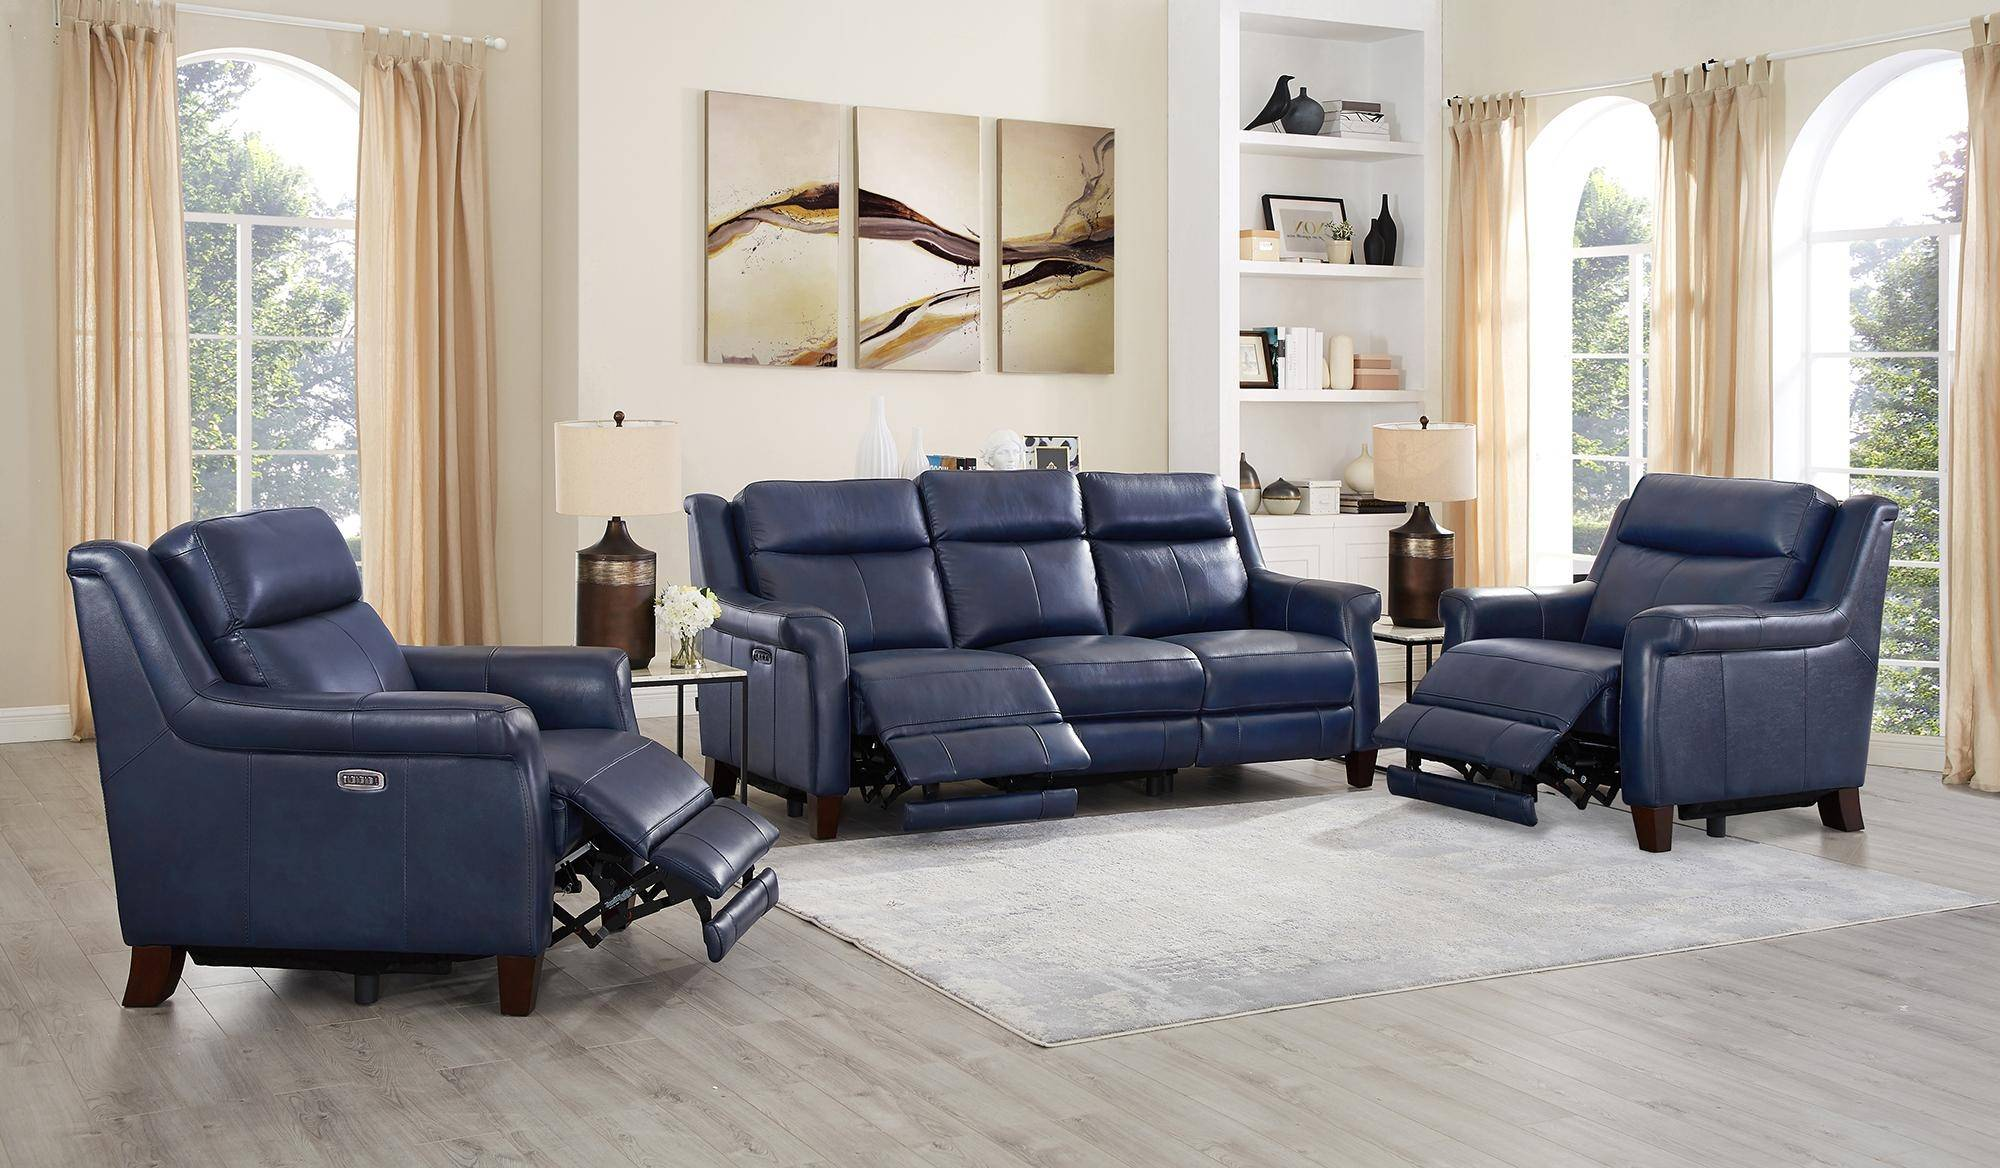 Fabulous Chatham Blue Genuine Leather Power Reclining Sofa Chair Set Beutiful Home Inspiration Truamahrainfo